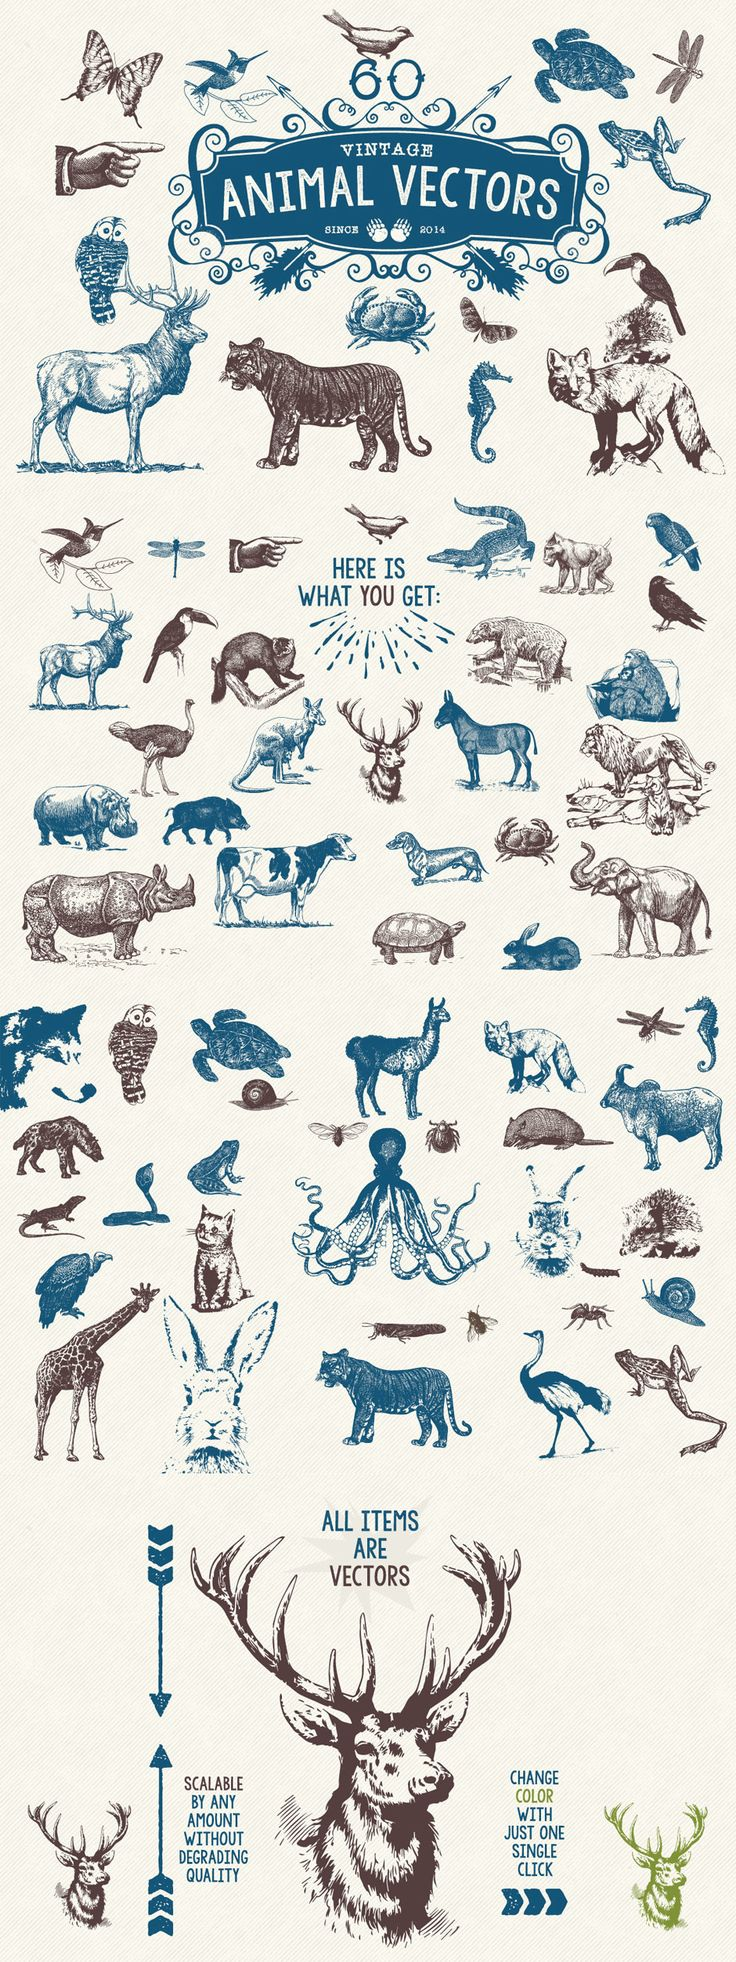 60 Vintage Animal Vectors by MouseMade| The trasporte de animales no sean ratados ni robados x secuestradores y gente y protecion ovni estataterrestre 2017 marcos angel carmona cazares Comprehensive, Creative Vectors Bundle Mar 2015 from Design Cuts